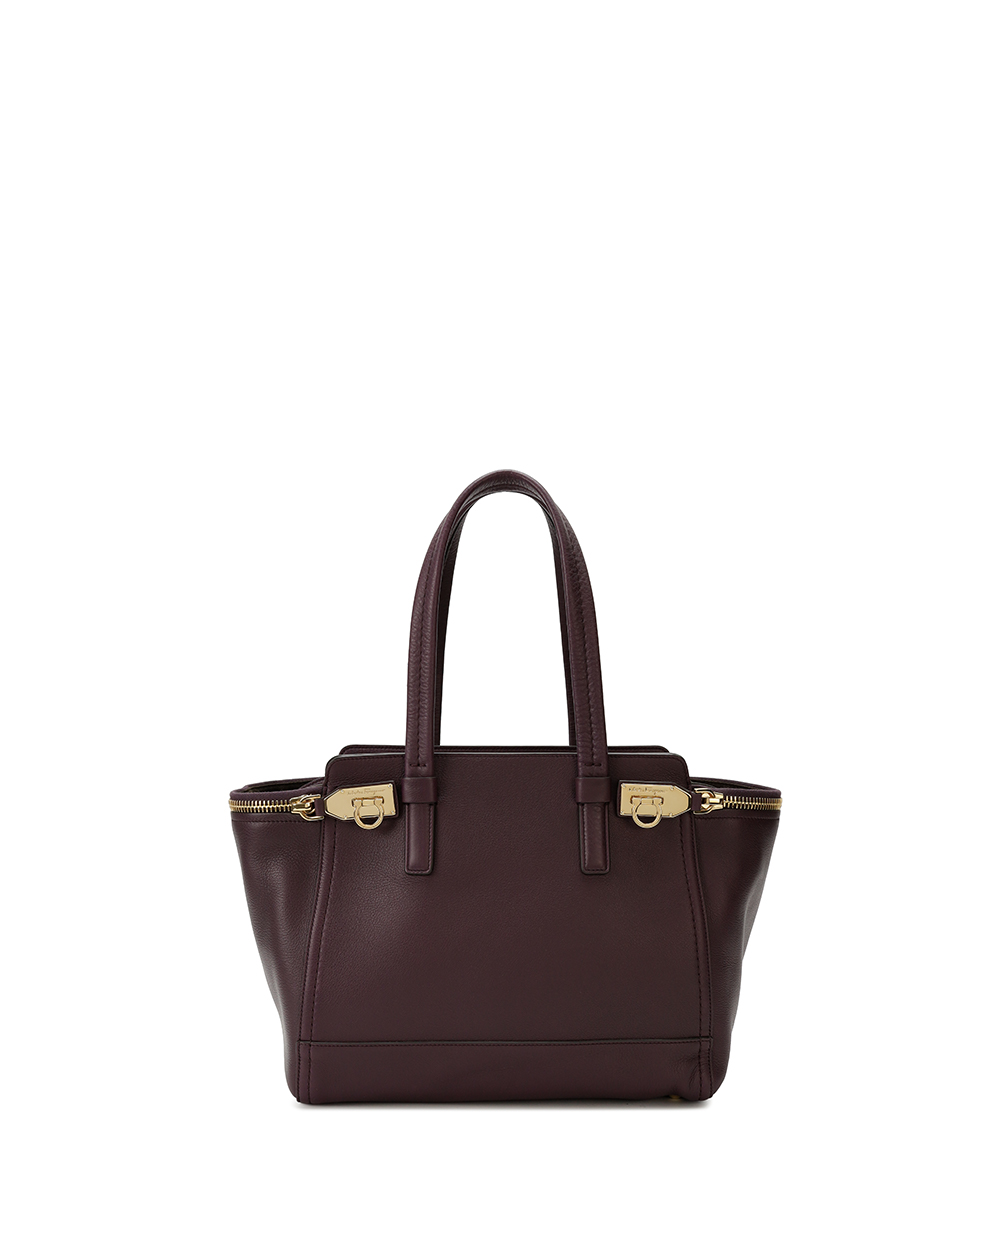 Verve Leather Handbag